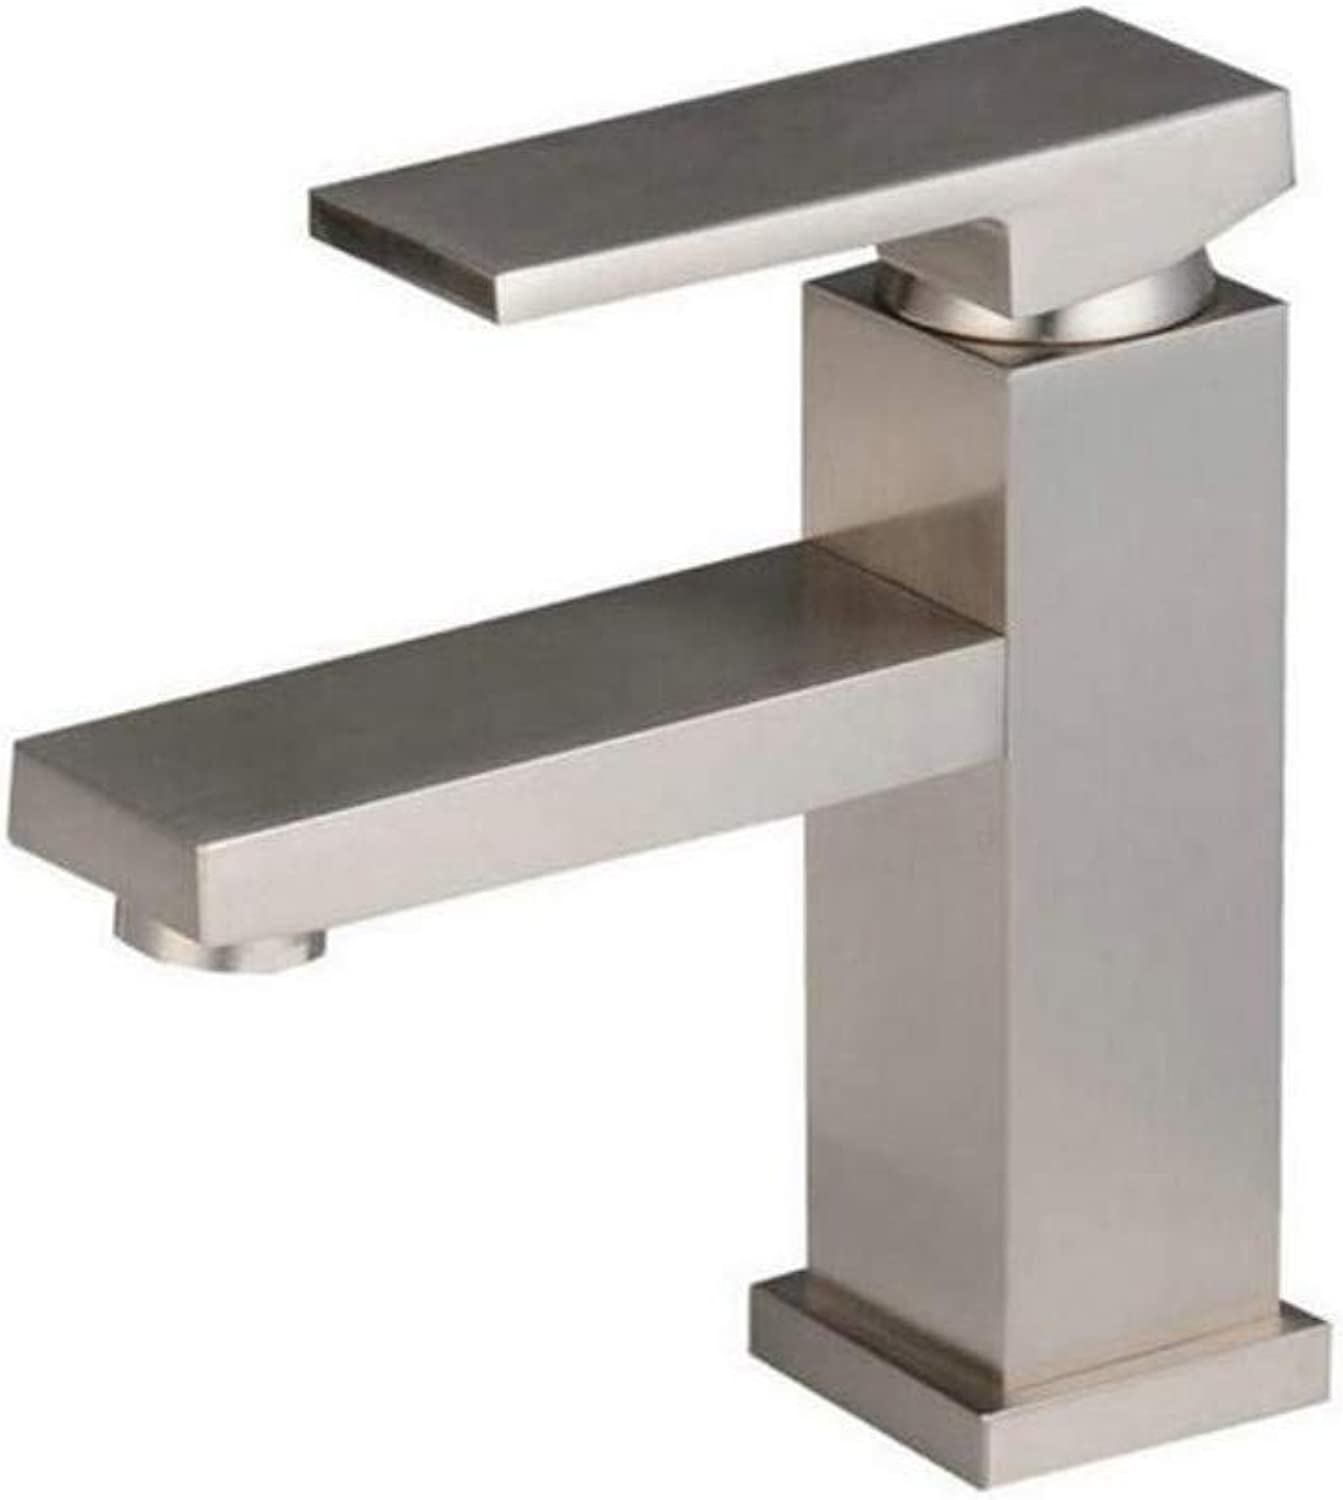 Faucet Lead-Free Square Innovationfaucet Toilet Washbasin Style Individual Faucet